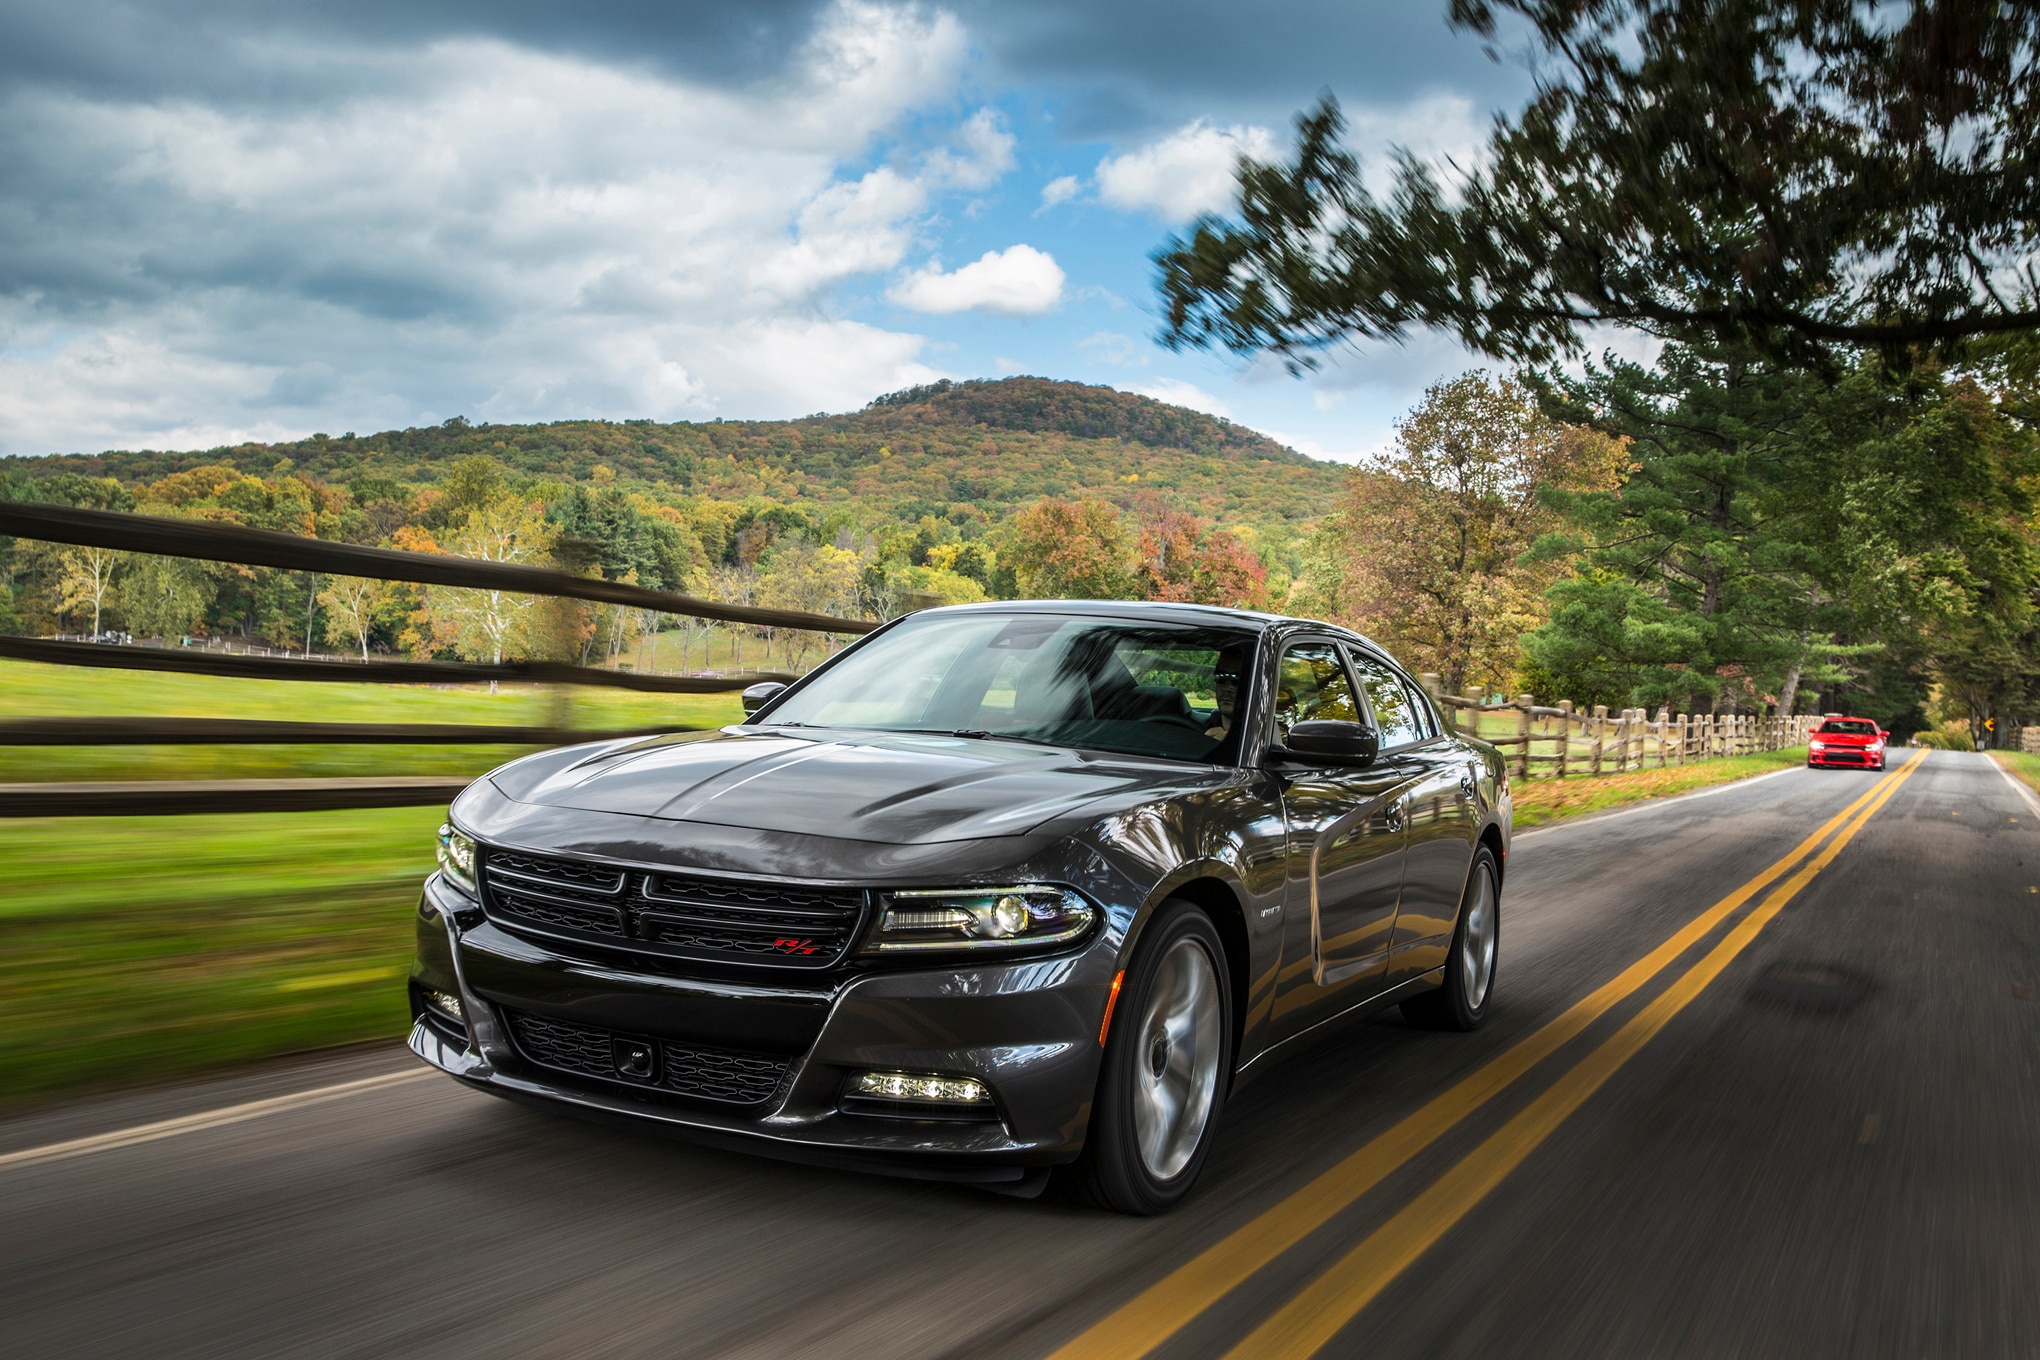 Rt 9 Auto Sales >> 2016 Dodge Charger R/T Scat Pack Quick Take Review | Automobile Magazine